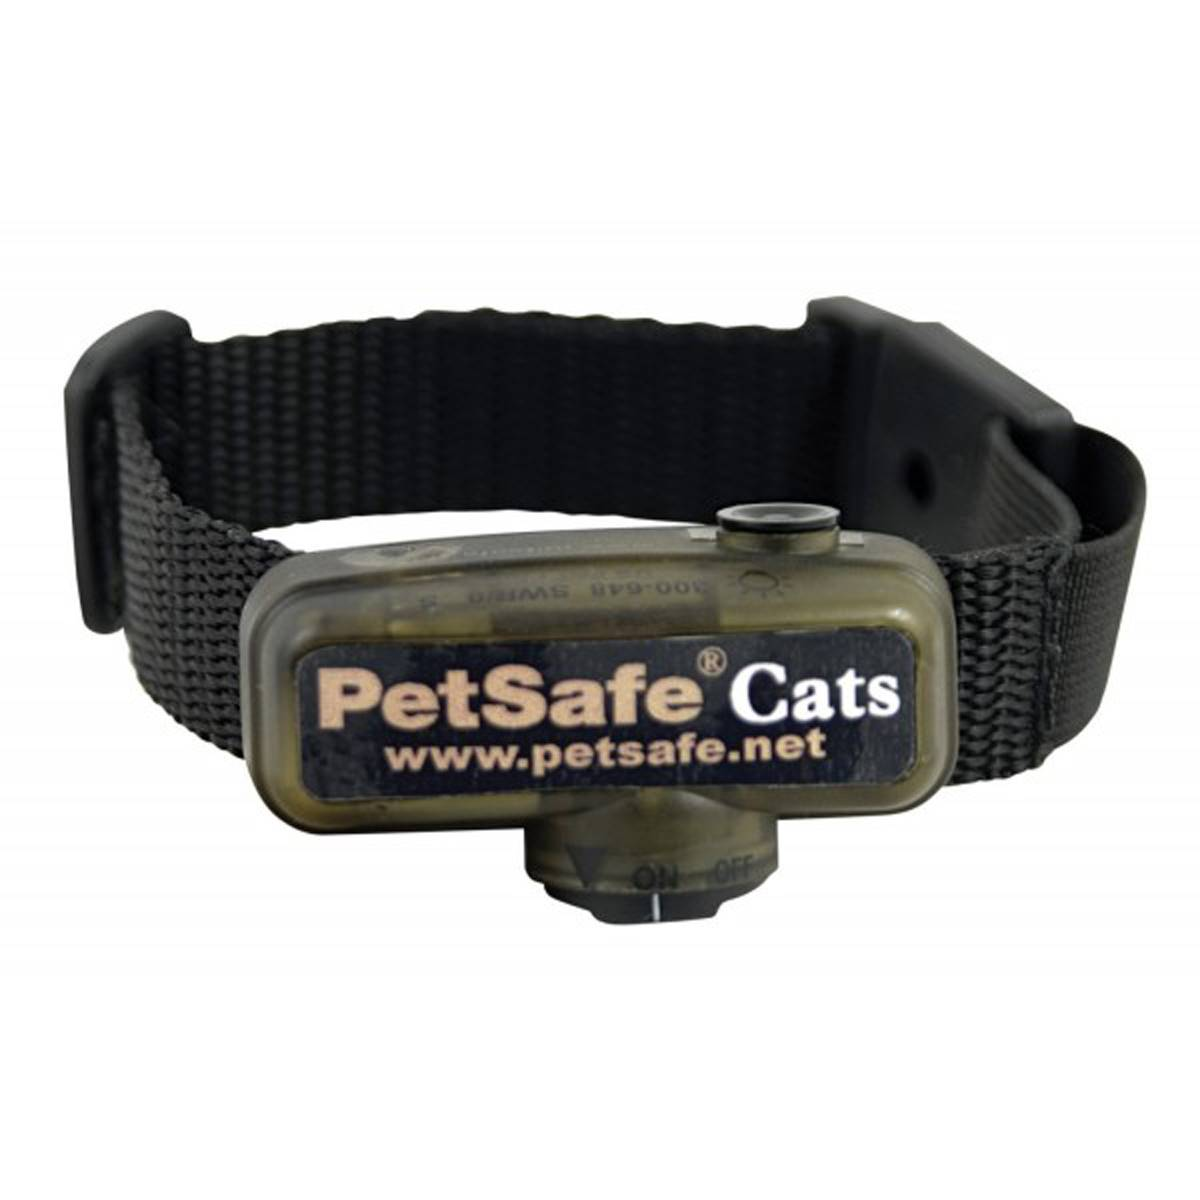 Petsafe - Cloture anti-fugue pour chats